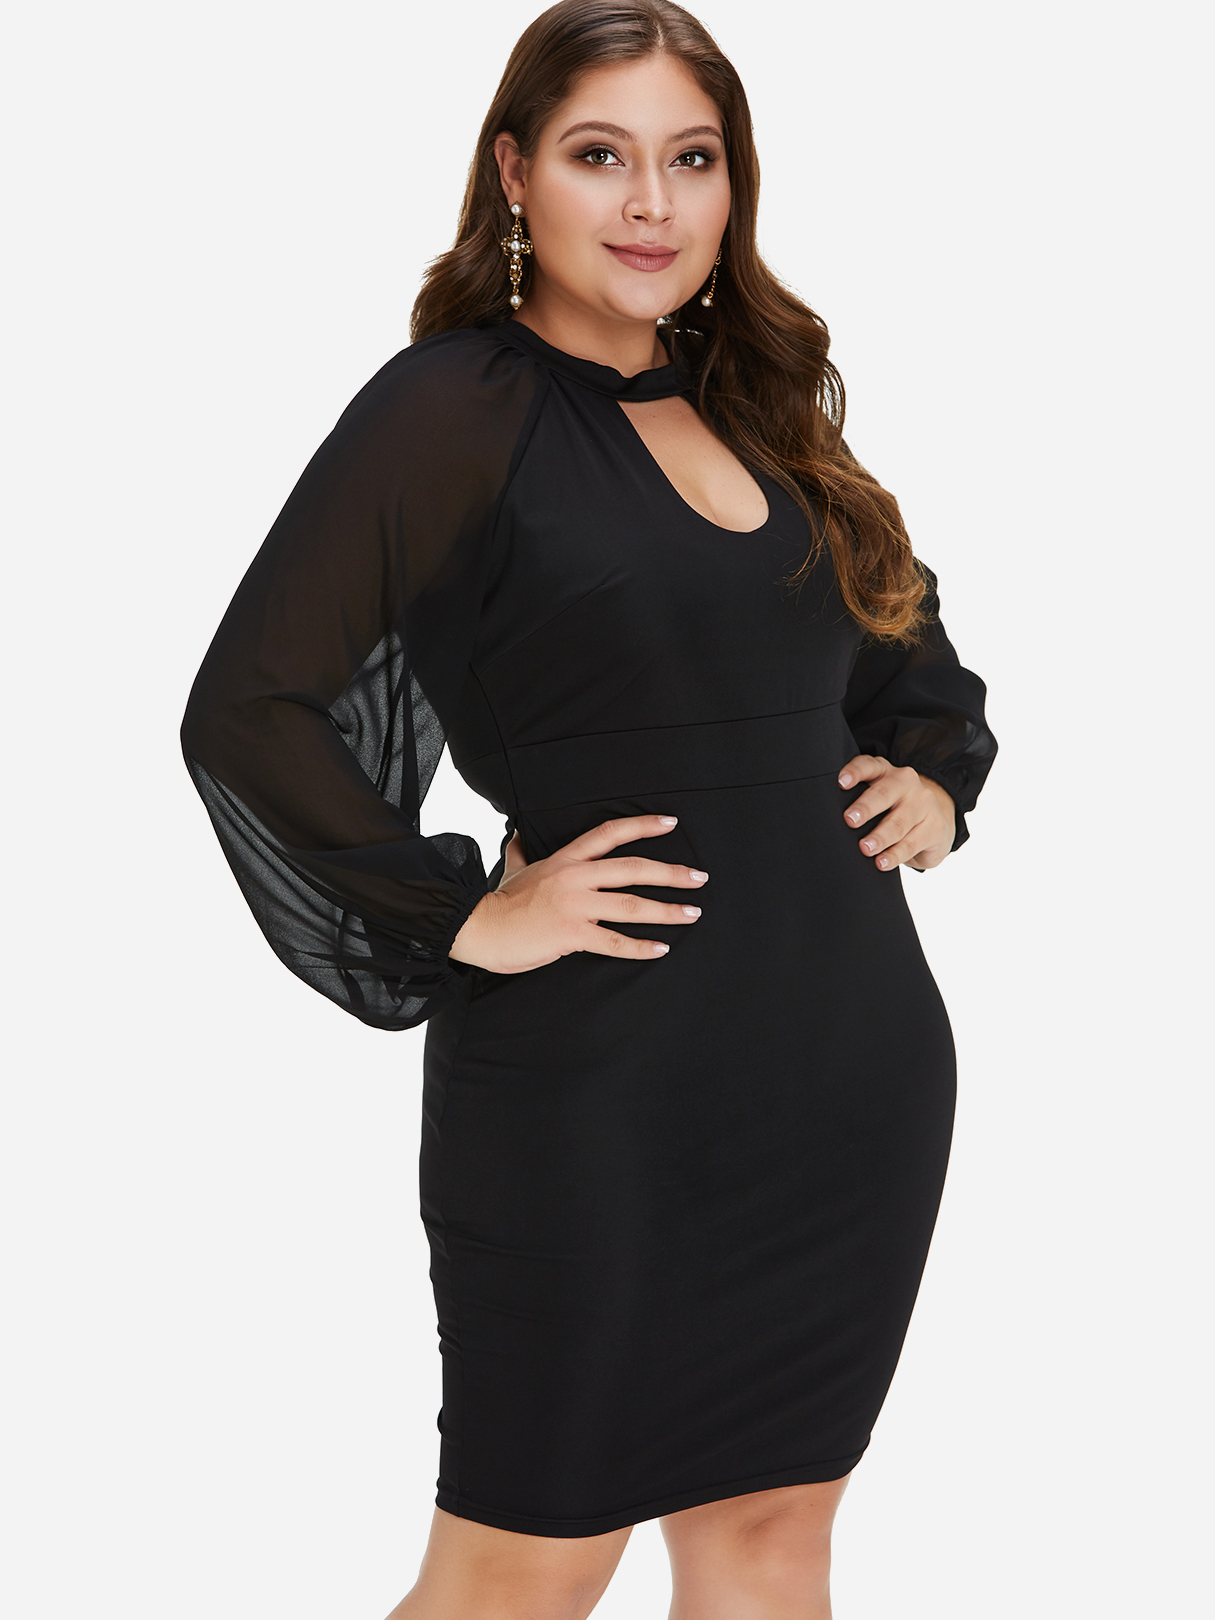 Plus Size Black Cut Out Lantern Sleeves Mini Dress